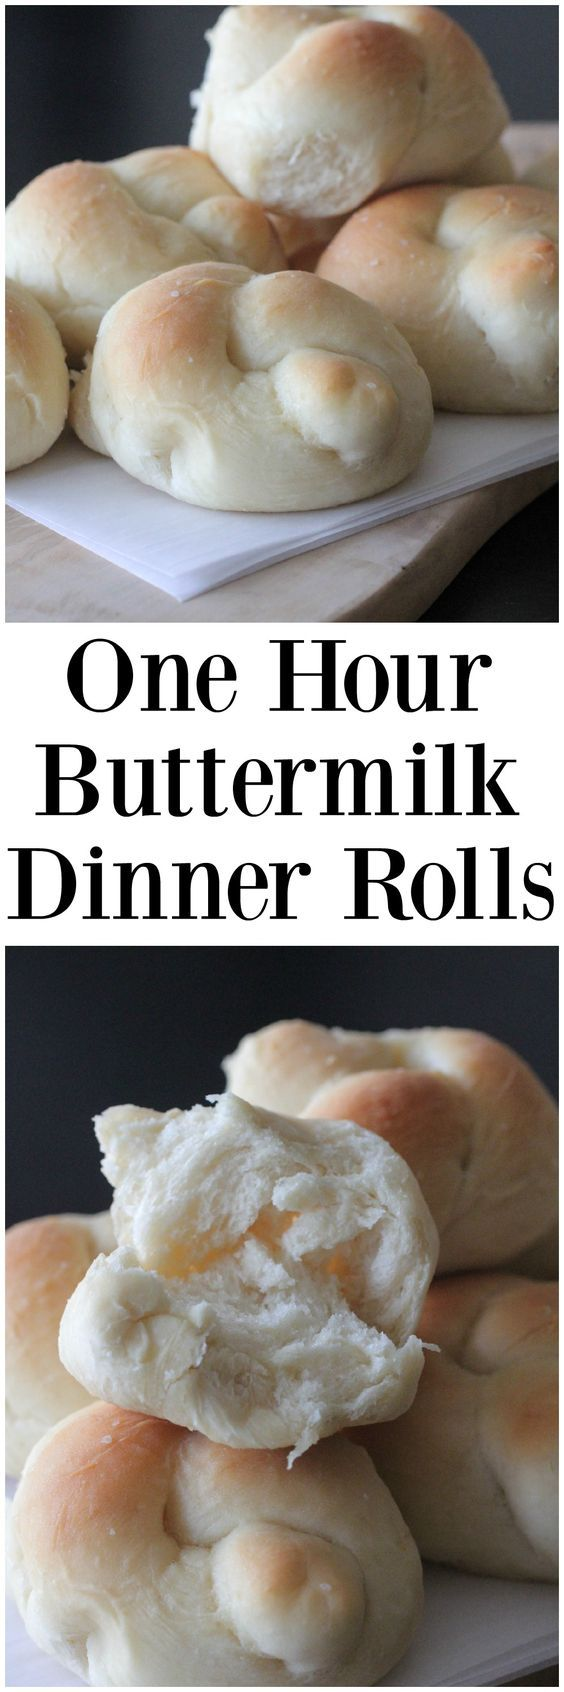 One Hour Buttermilk Dinner Rolls! Simple and these come out great every time…